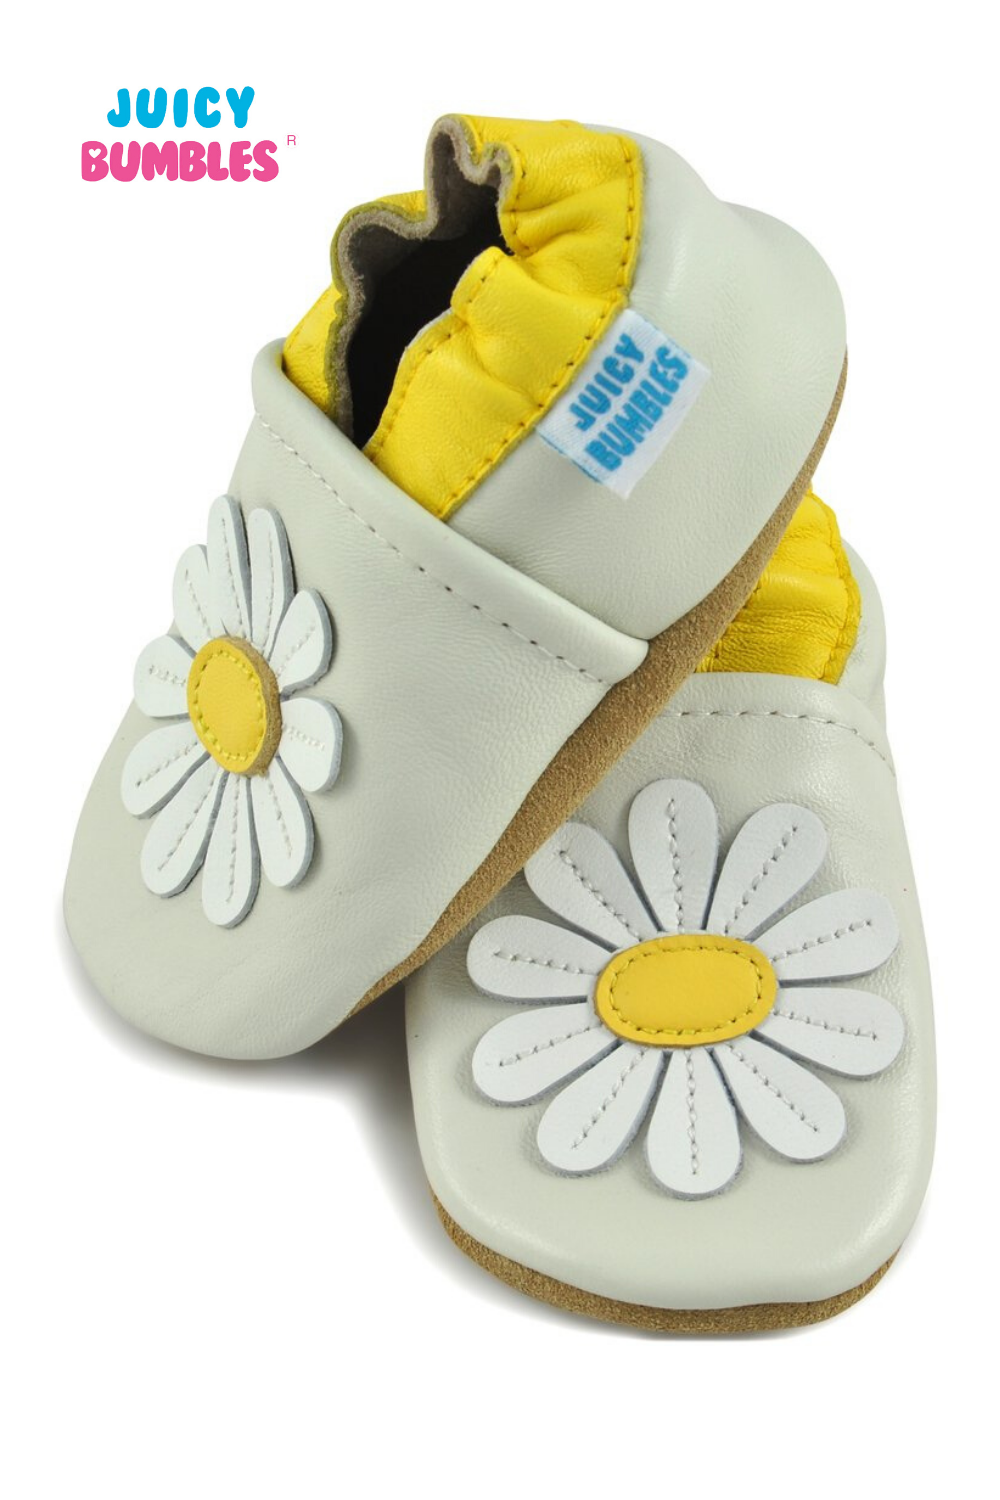 Baby Shoes Daisy By Juicy Bumbles Available On Amazon Prime In 2020 Baby Shoes Baby Shoes Newborn Soft Sole Baby Shoes